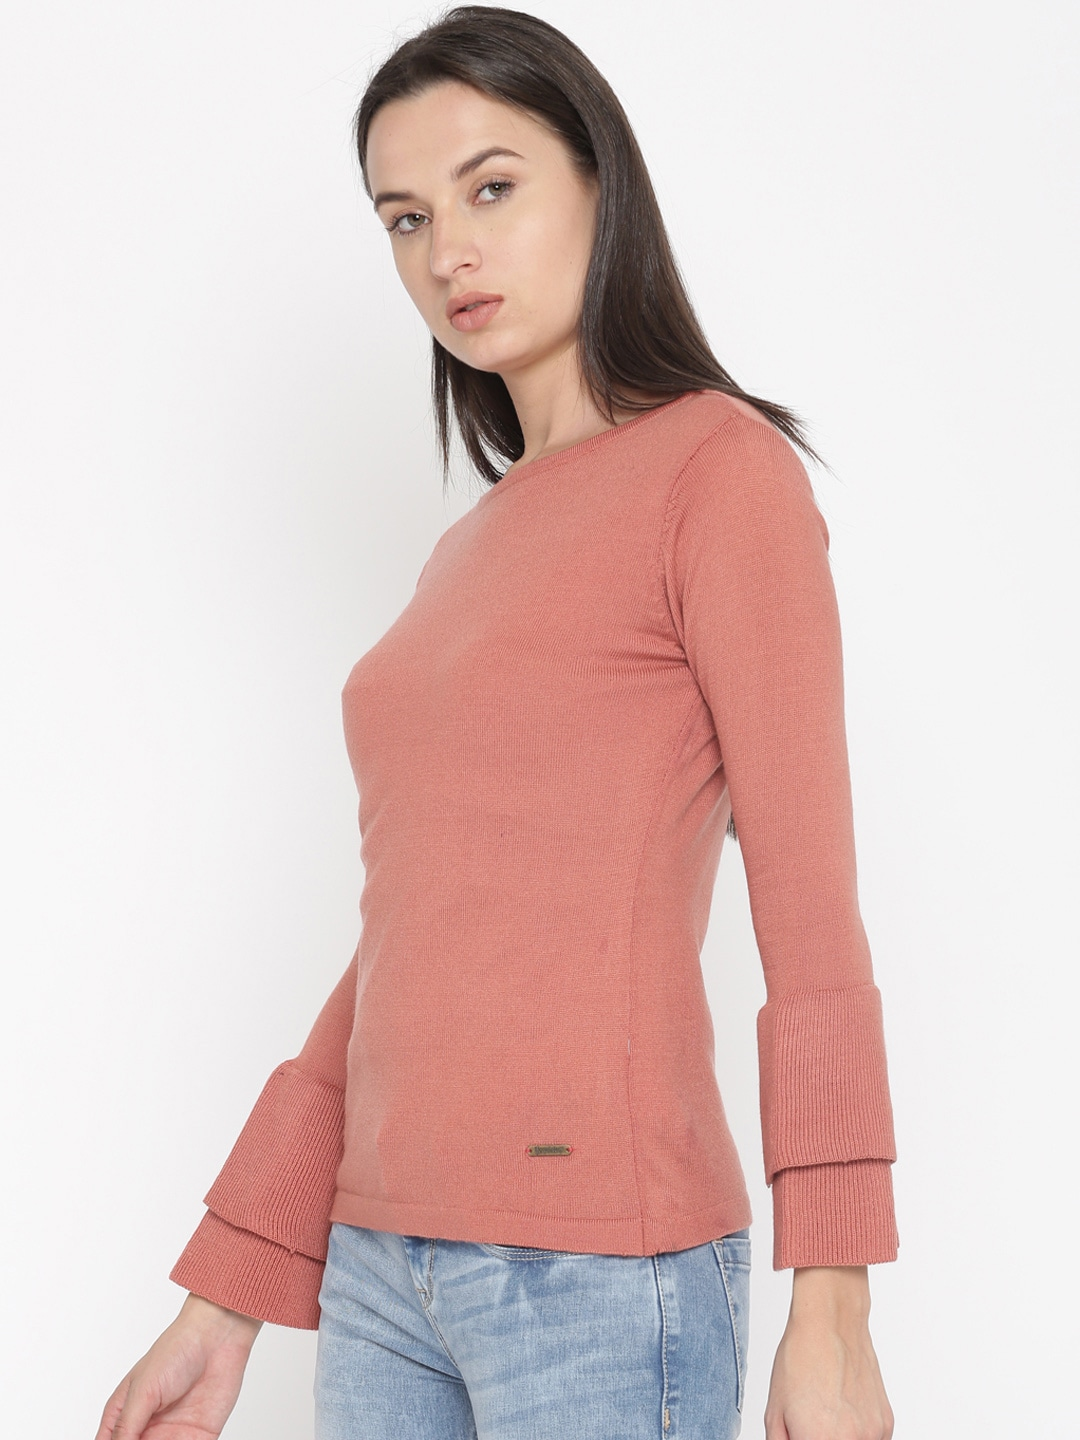 Women Sweater - Buy Women Sweater online in India